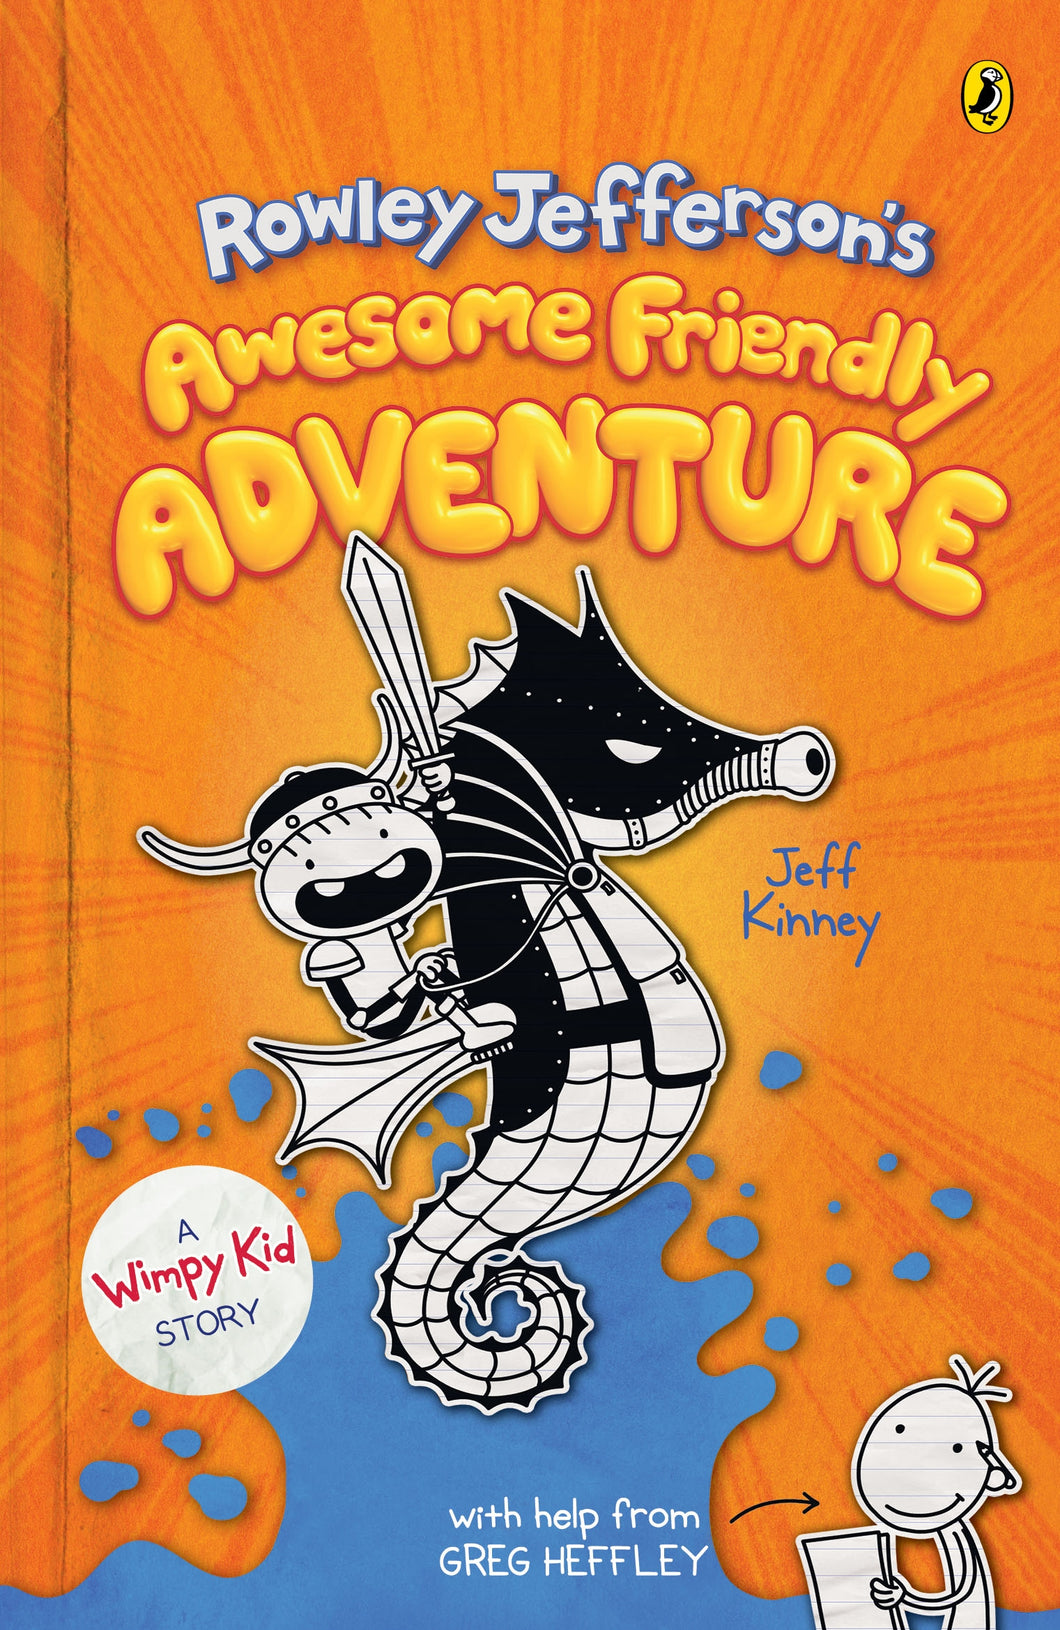 Rowley Jefferson's Awesome Friendly Adventure - Hardback at Paperback Price!